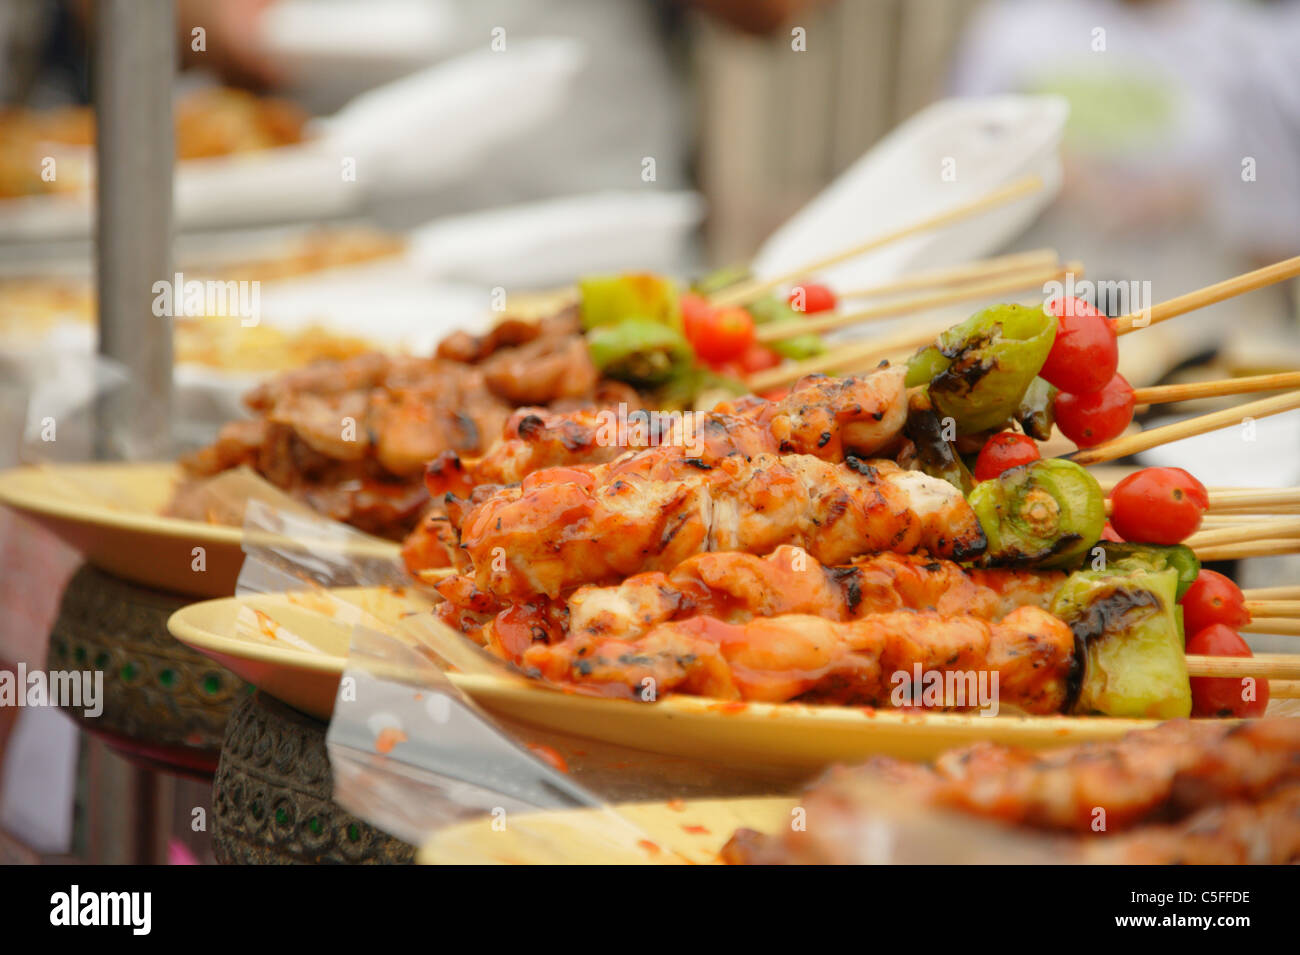 Thai cuisine barbecue chicken and pork skewers at Chatuchak weekend market in Bangkok, Thailand - Stock Image